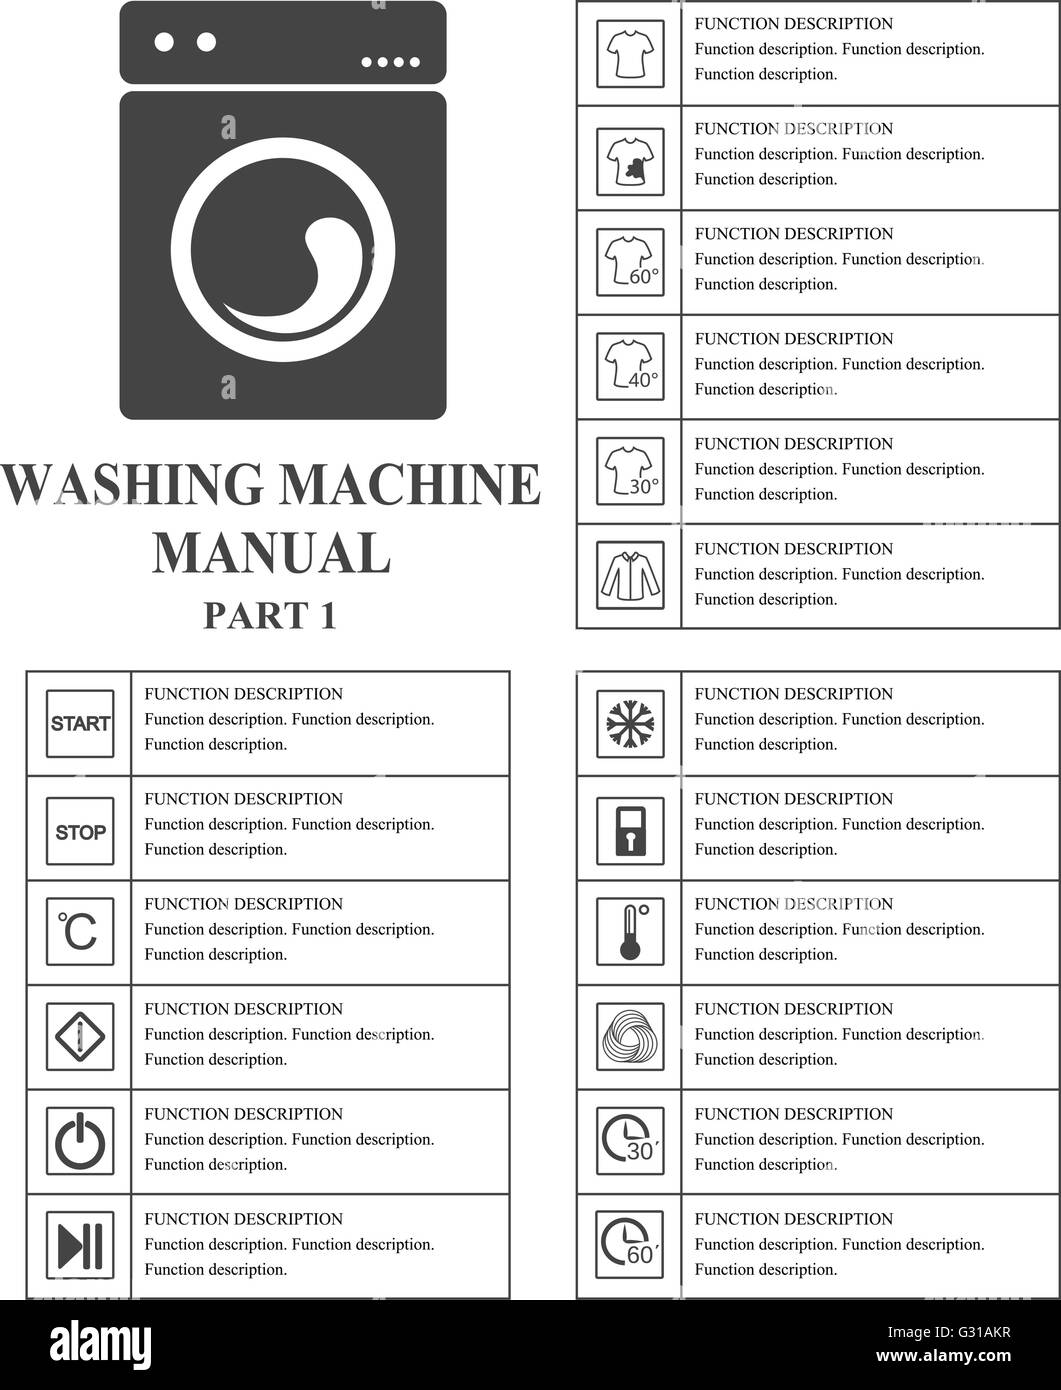 Oven manual symbols part 1 instructions signs and symbols for oven manual symbols part 1 instructions signs and symbols for washing machine exploitation manual instructions and function d biocorpaavc Gallery